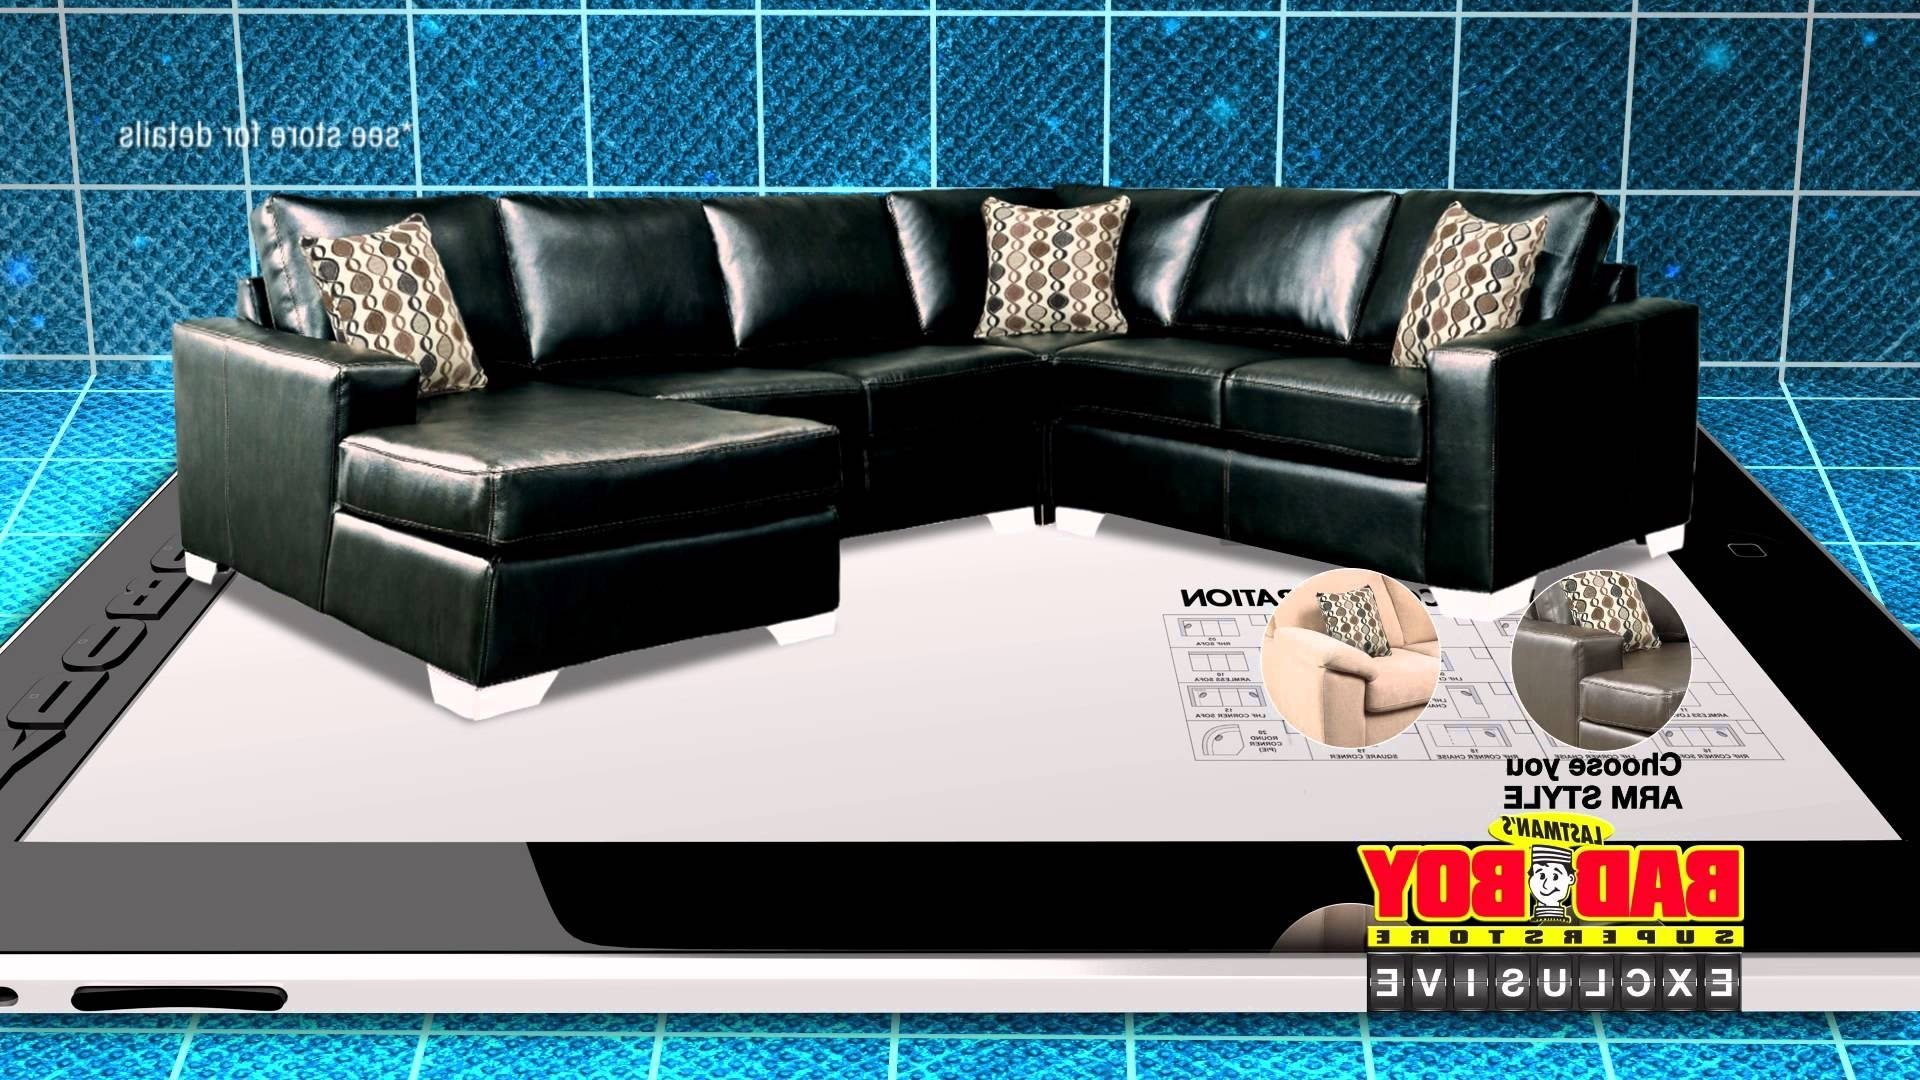 Well Known Sectional Sofas At Bad Boy Intended For Have It Your Way, Customize Your Sofa At Lastman's Bad Boy – Youtube (View 19 of 20)